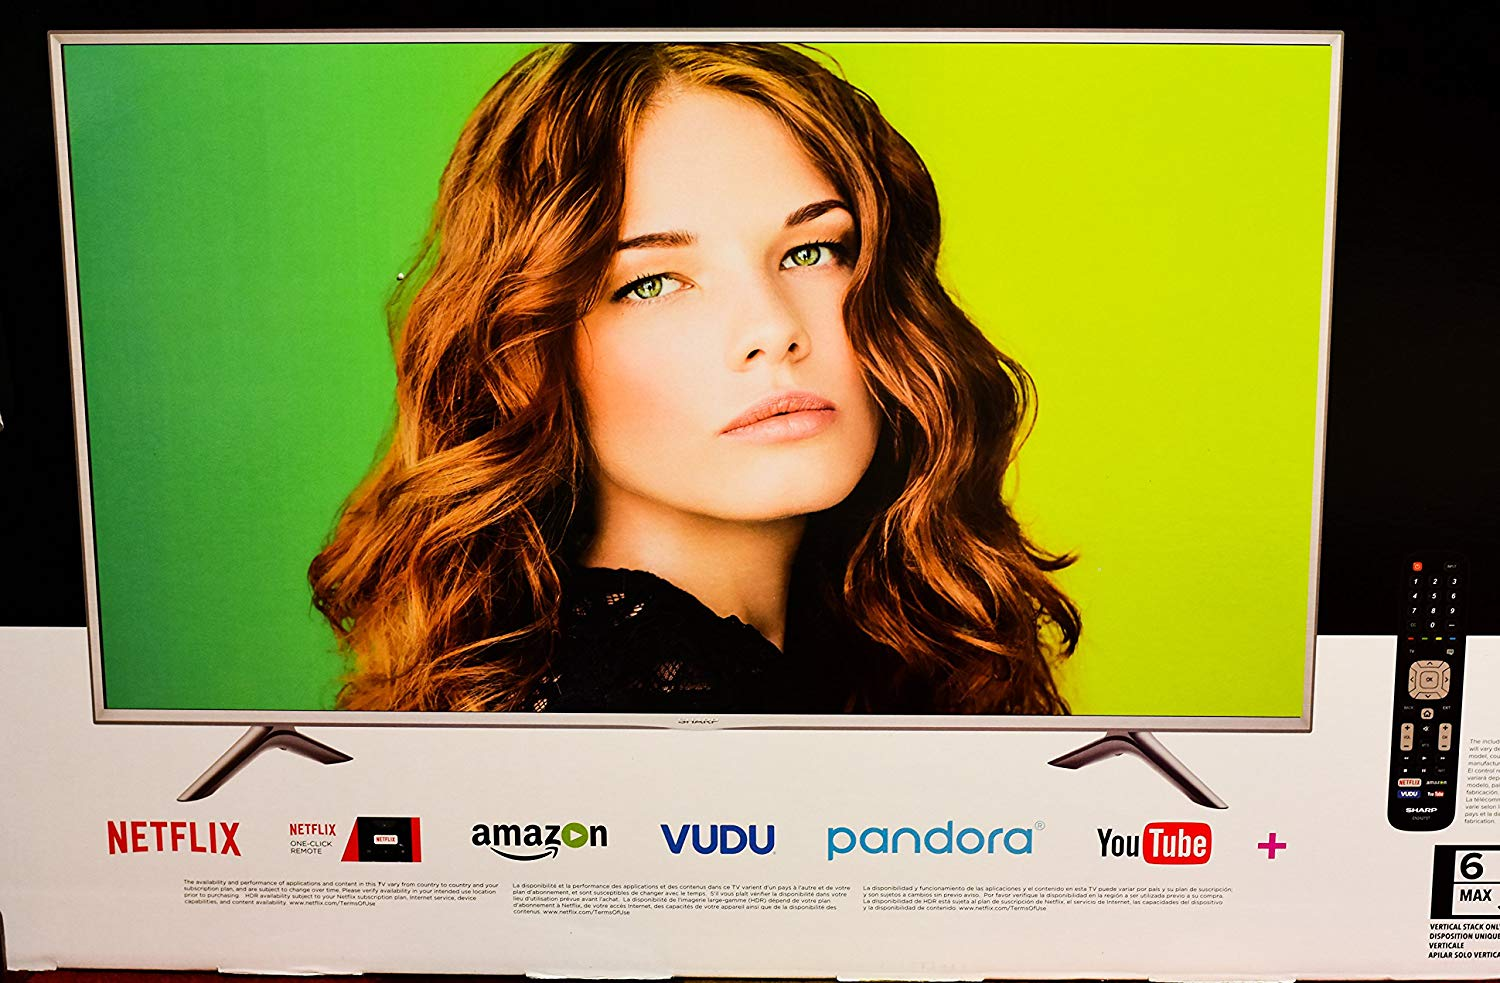 An image of Sharp LC-55P6000U 55-Inch HDR 4K LED 120Hz TV with Motion Rate 120